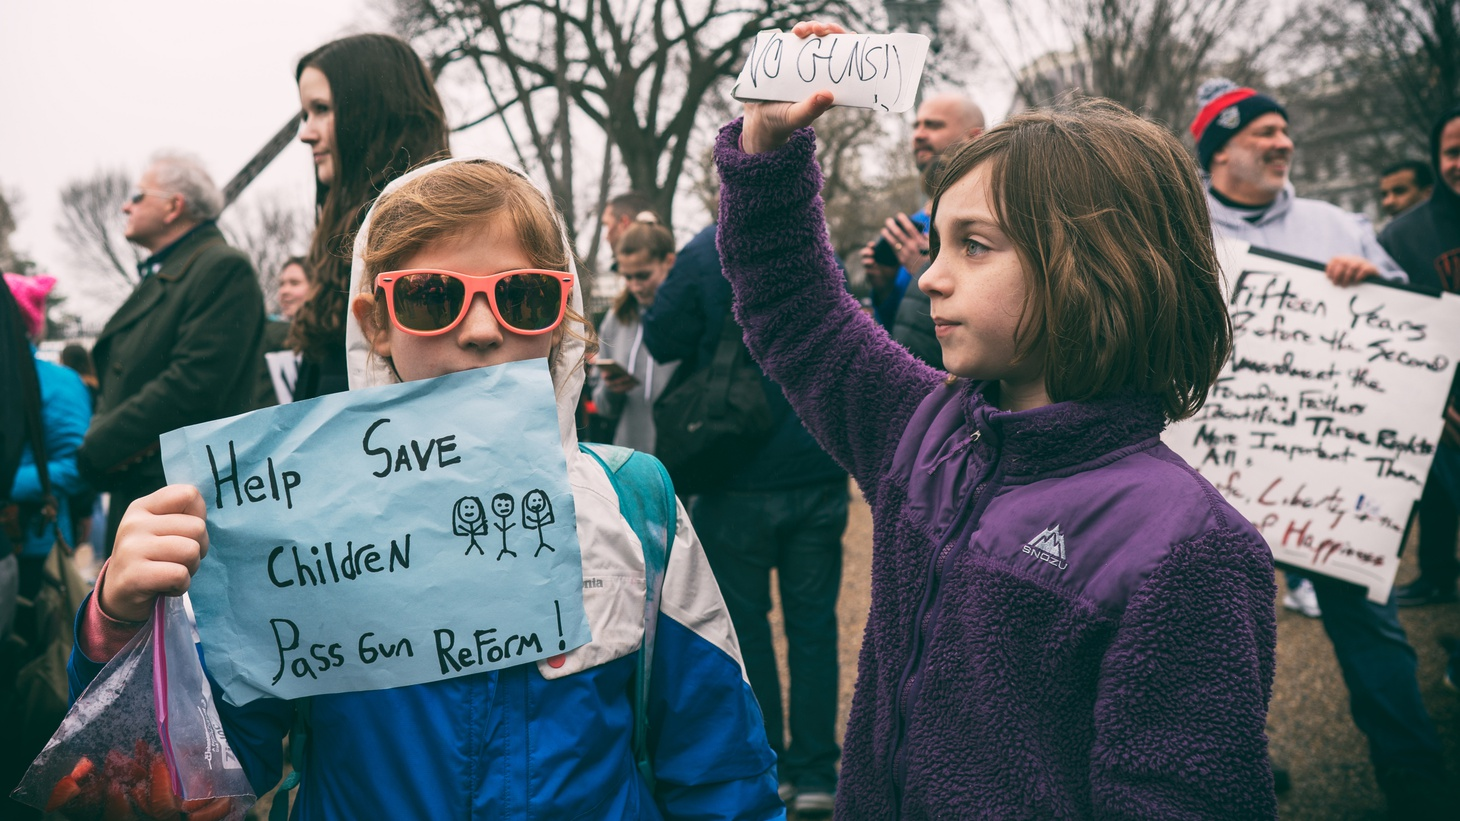 A rally at the White House to protest gun laws, organized by Teens For Gun Reform, in the wake of the mass shooting at Marjory Stoneman Douglas High School in Parkland, Florida.